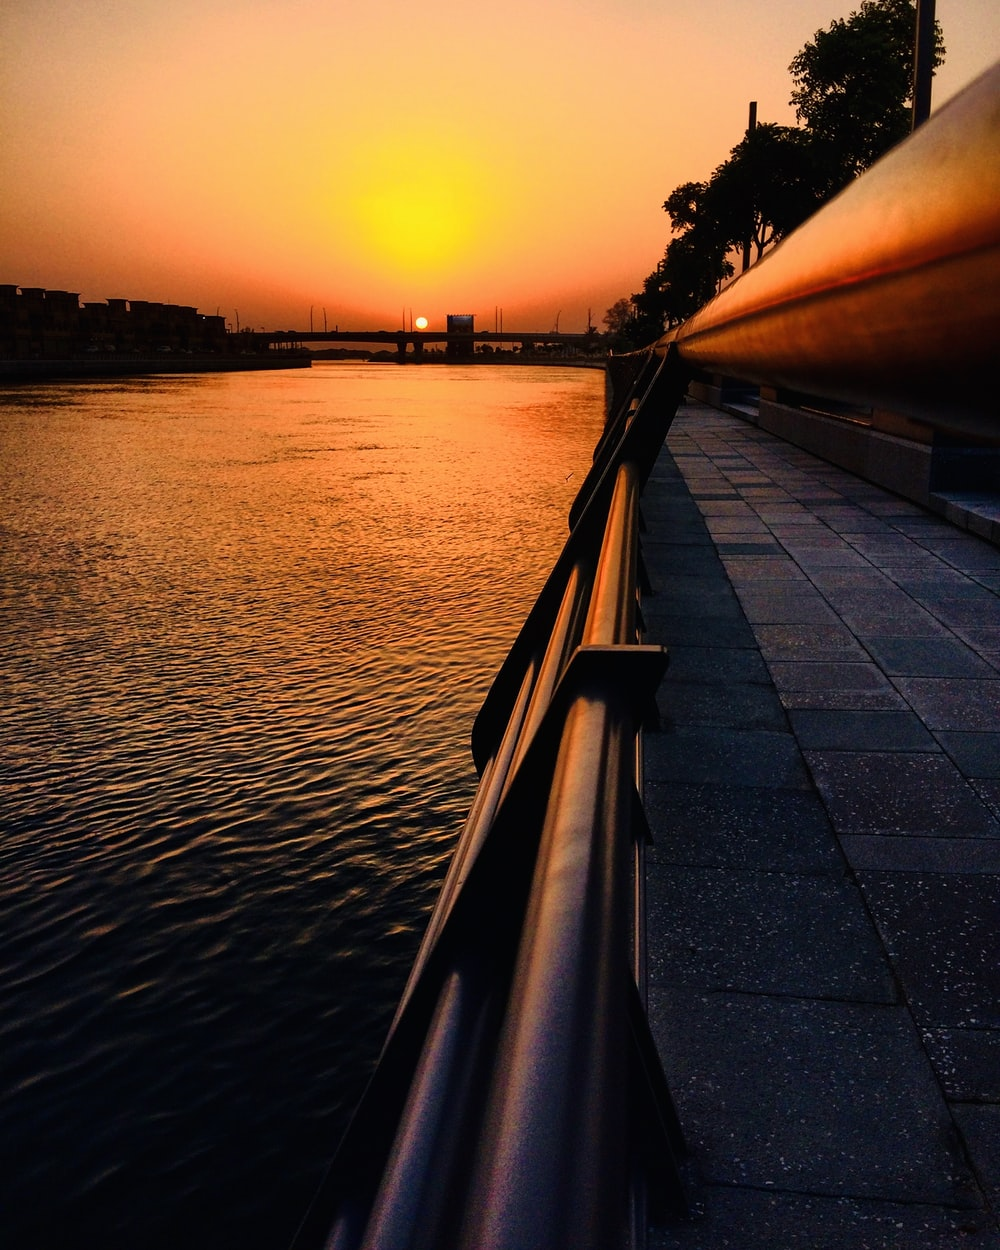 urban photo of a river at sunset